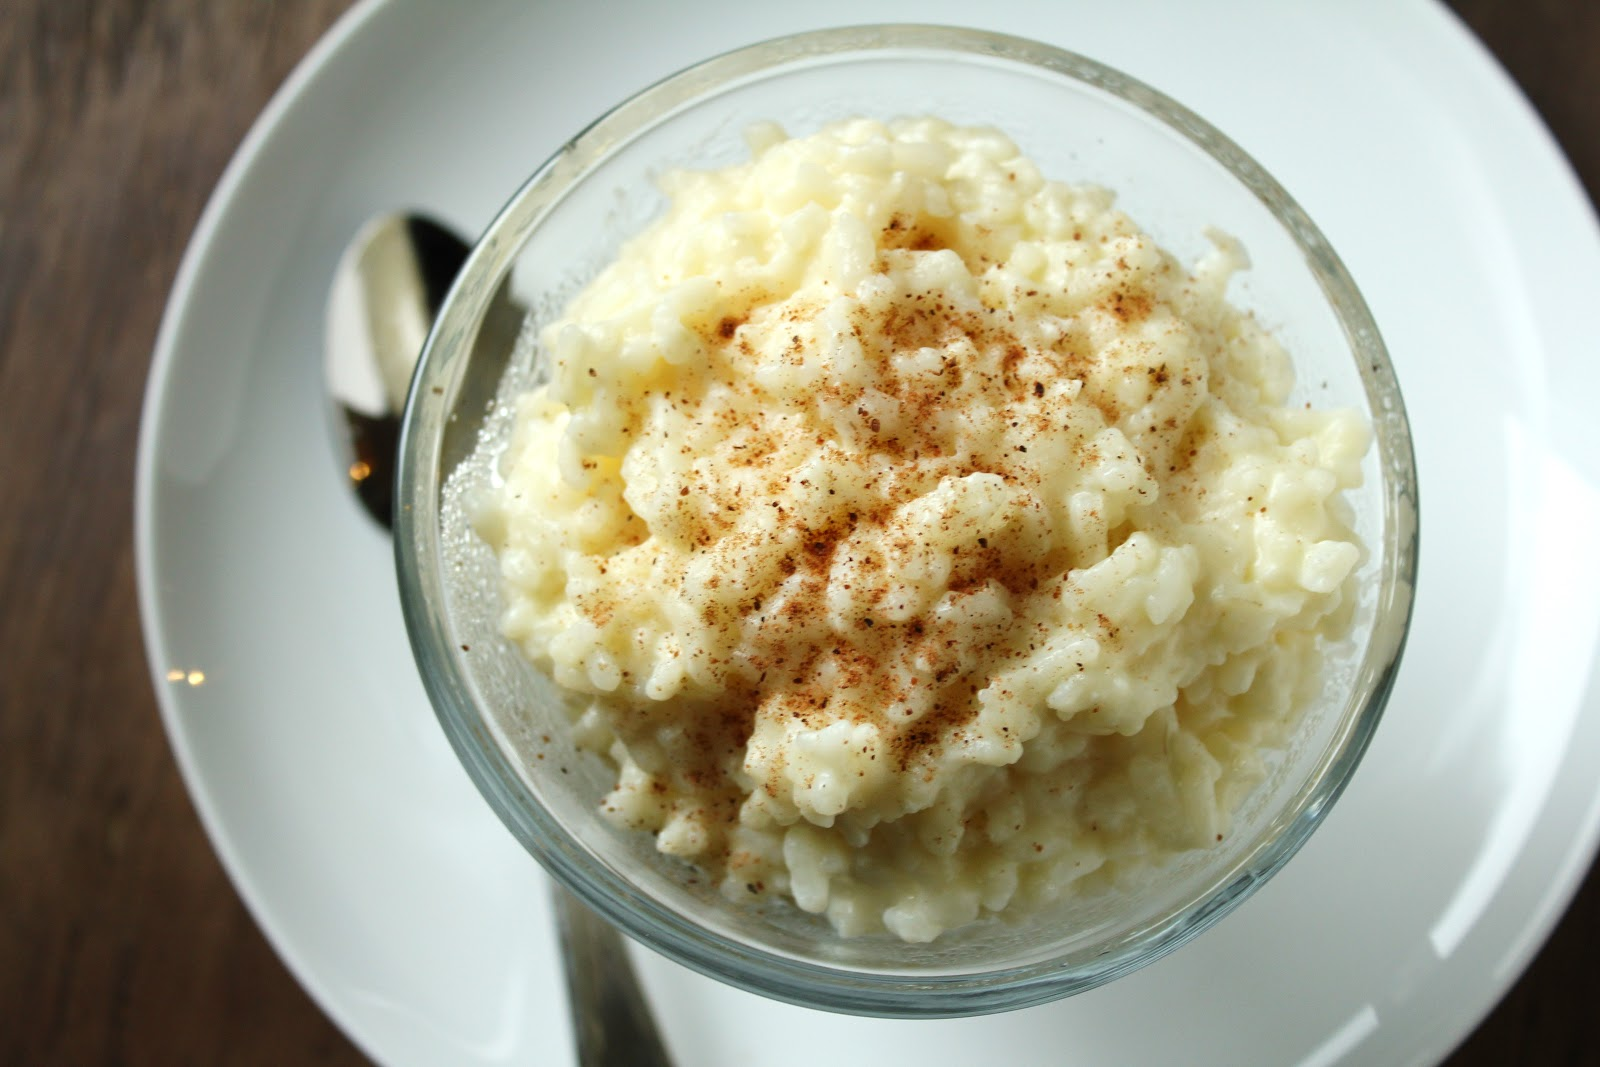 creamy vanilla rice pudding with ground nutmeg sprinkled on top